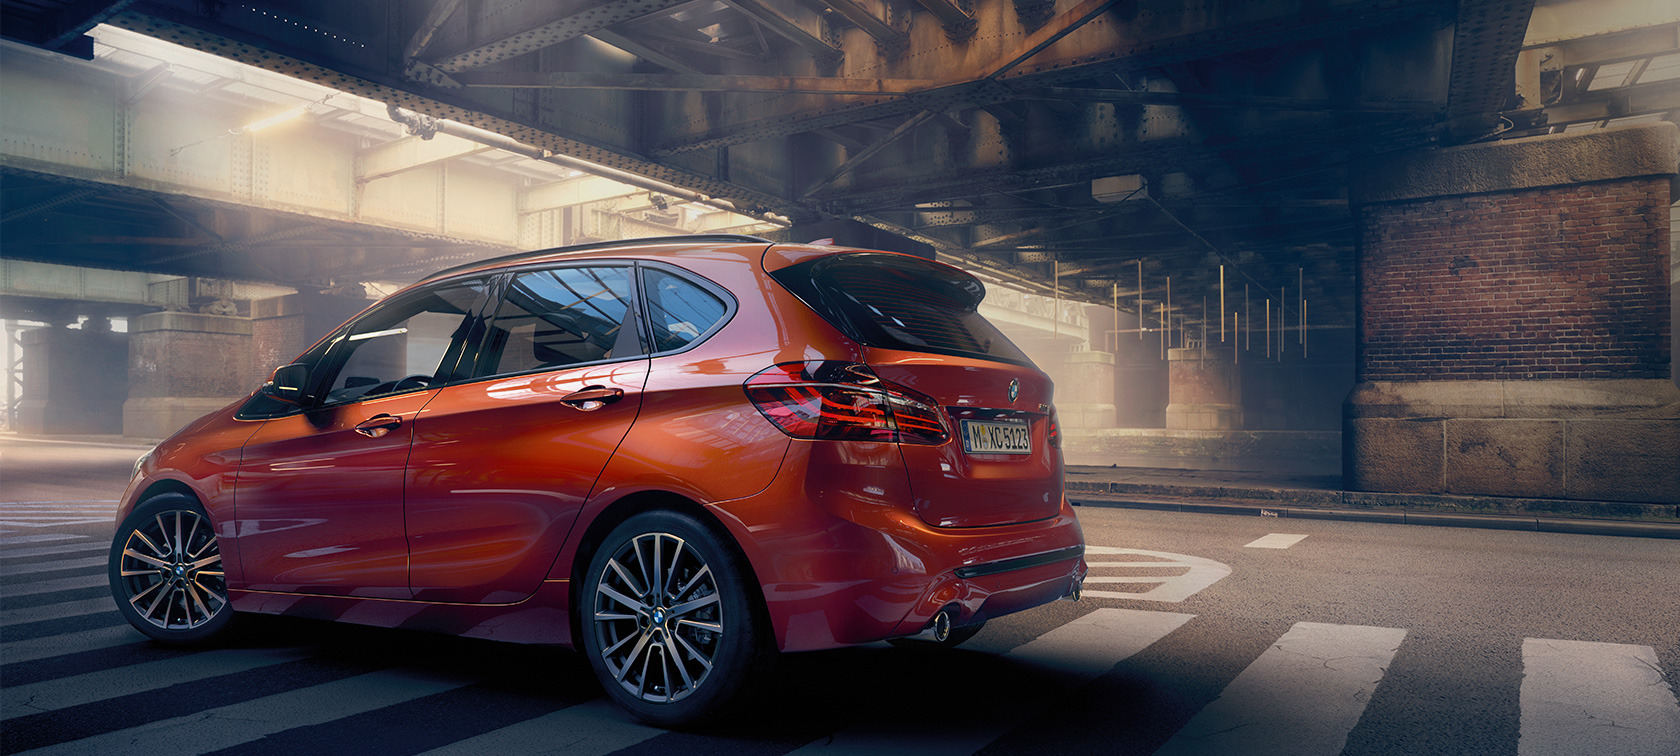 BMW 2-serie Active Tourer F45 Facelift 2018 Sunset Orange metallic sett fra siden stående i hall